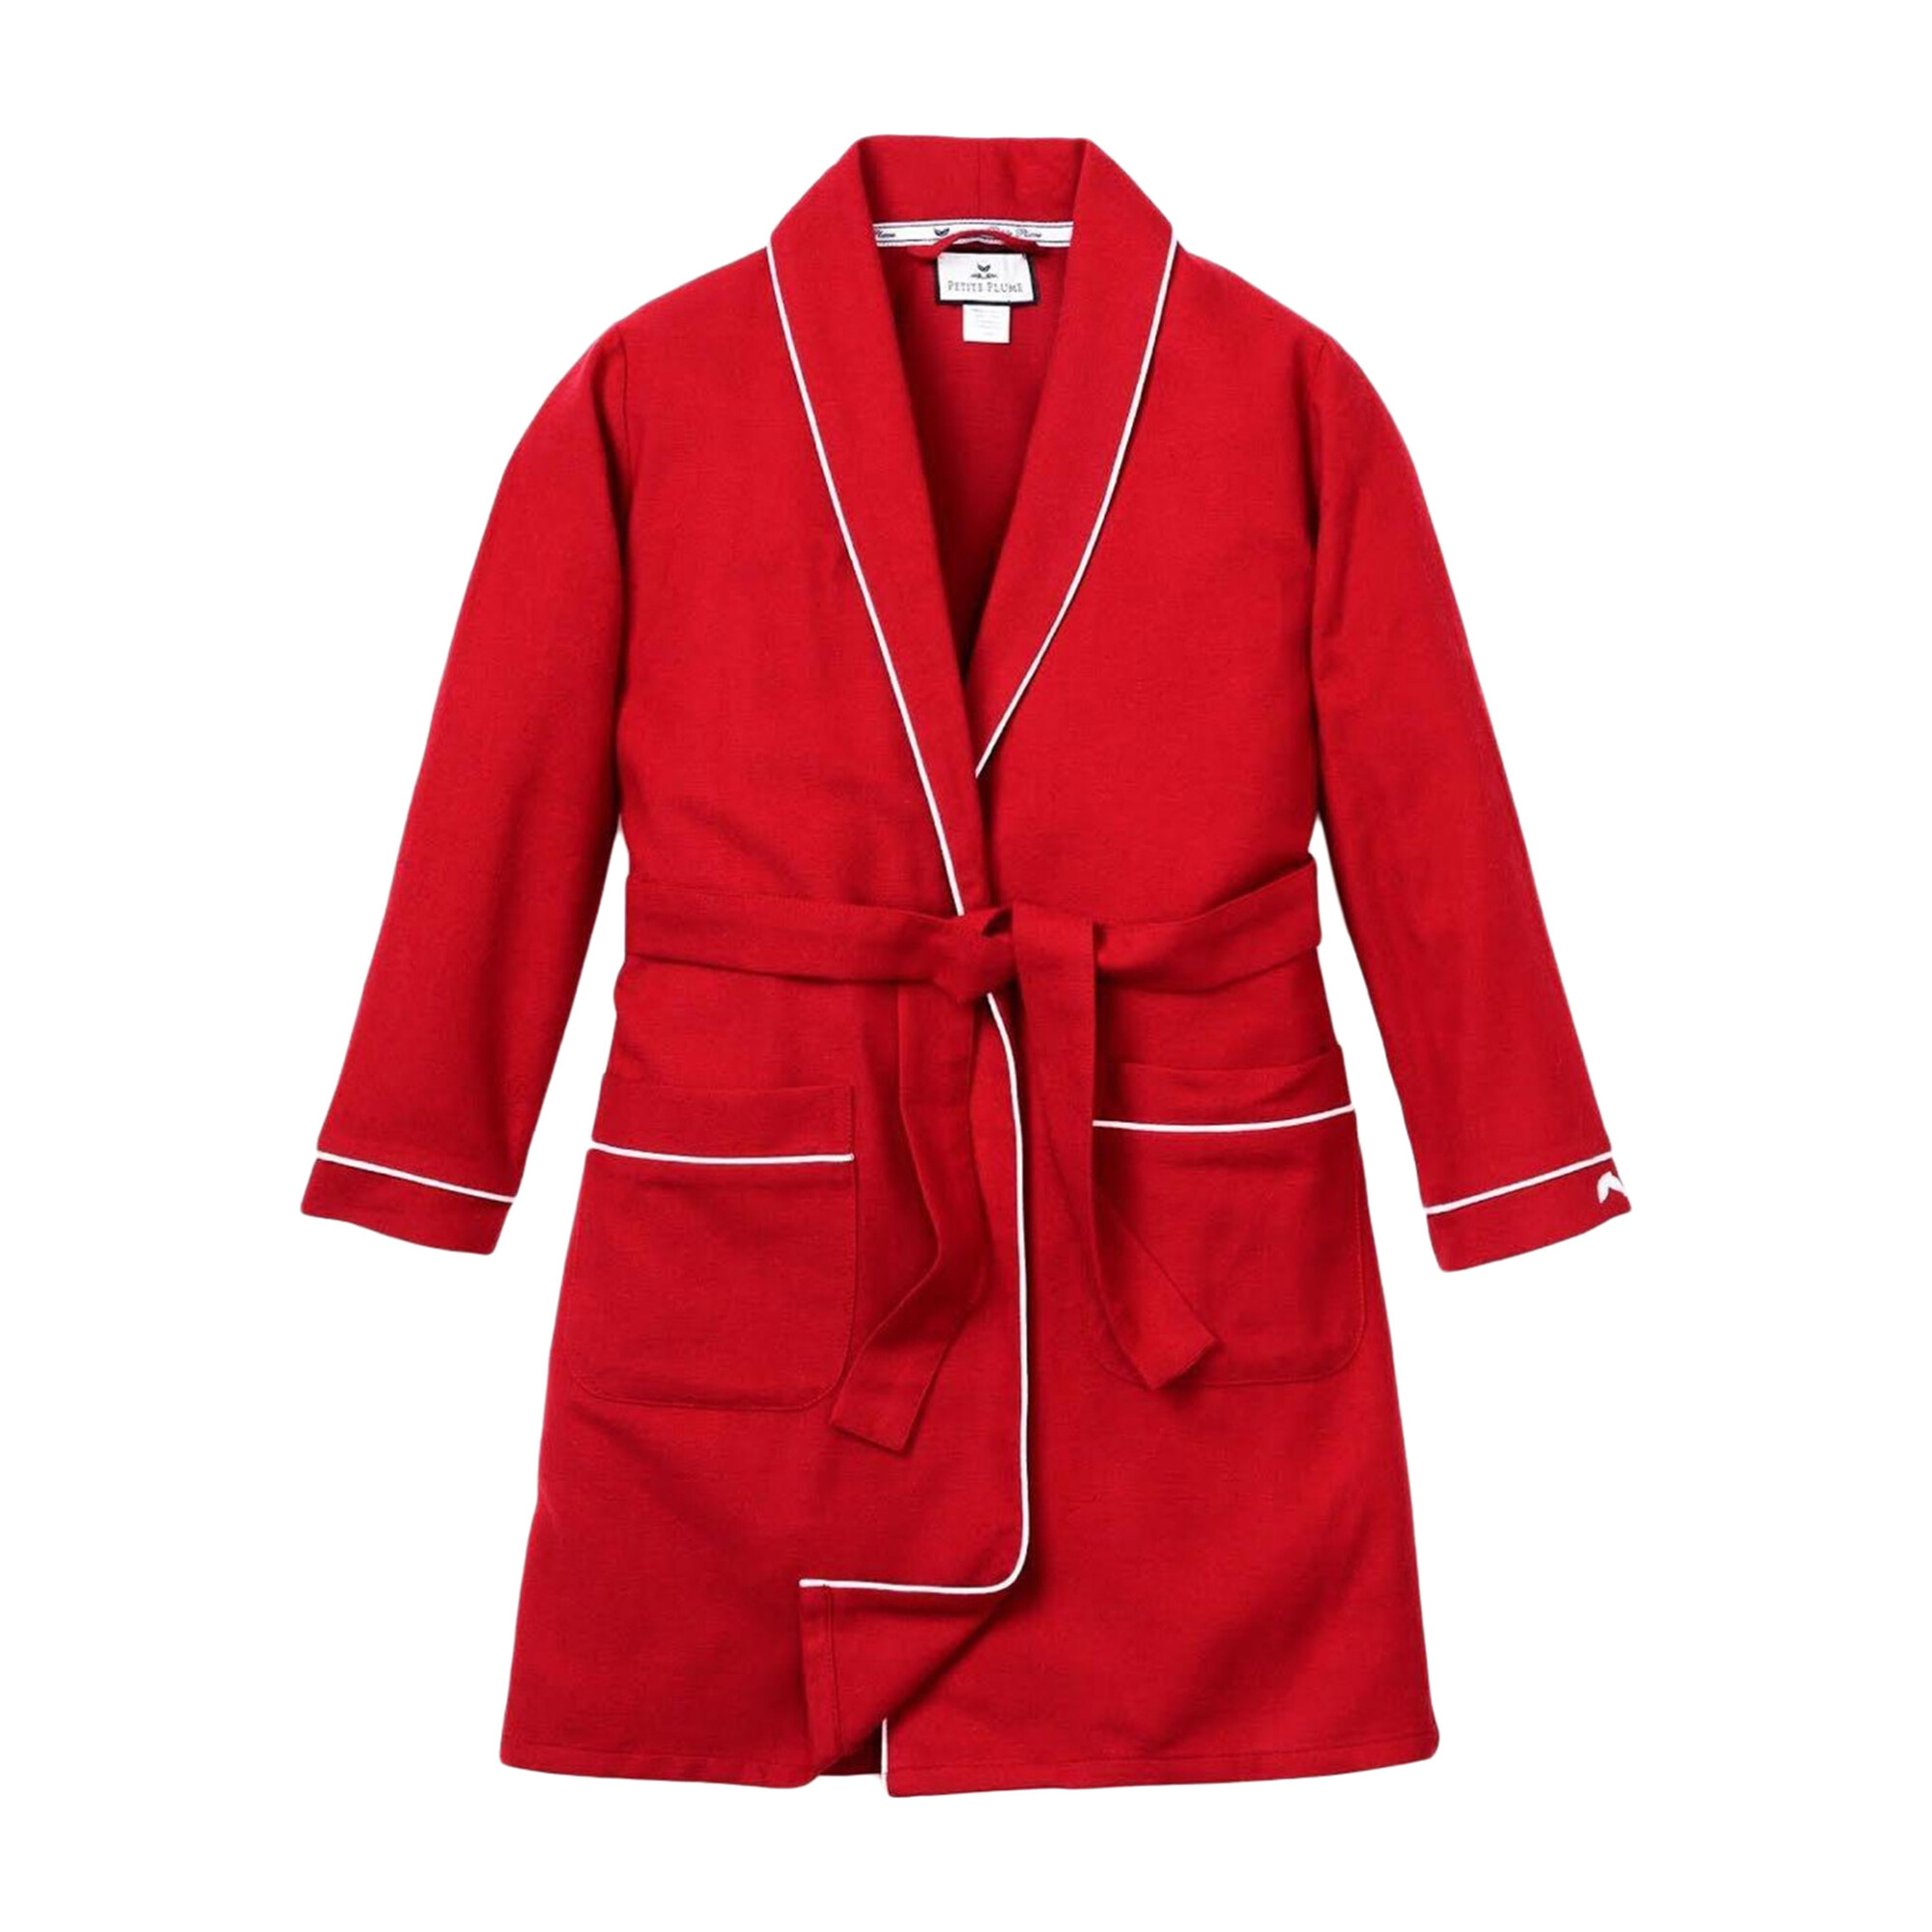 Red Flannel Robe With White Piping Home Bath Beauty Robes Slippers Maisonette